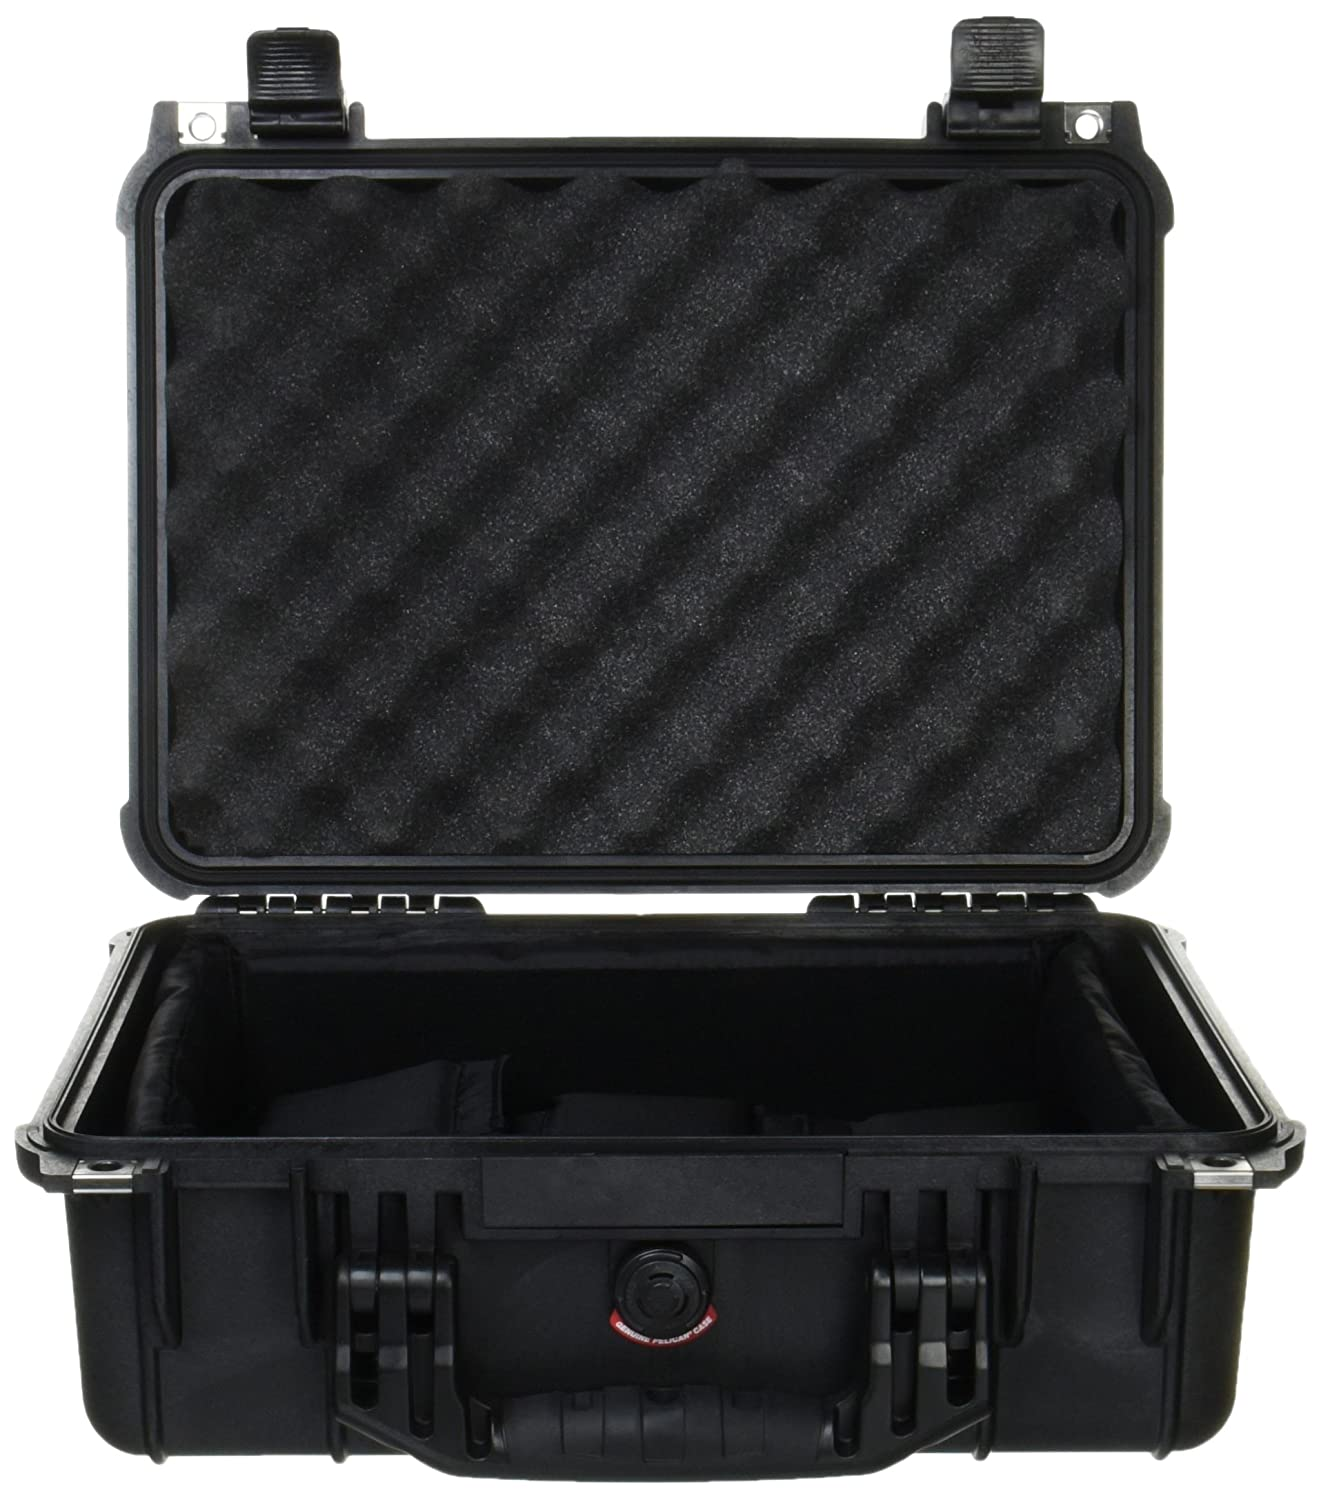 6127922f892 Pelican 1450 Case With Padded Dividers  (Black ) Pelican Products Inc. 1450